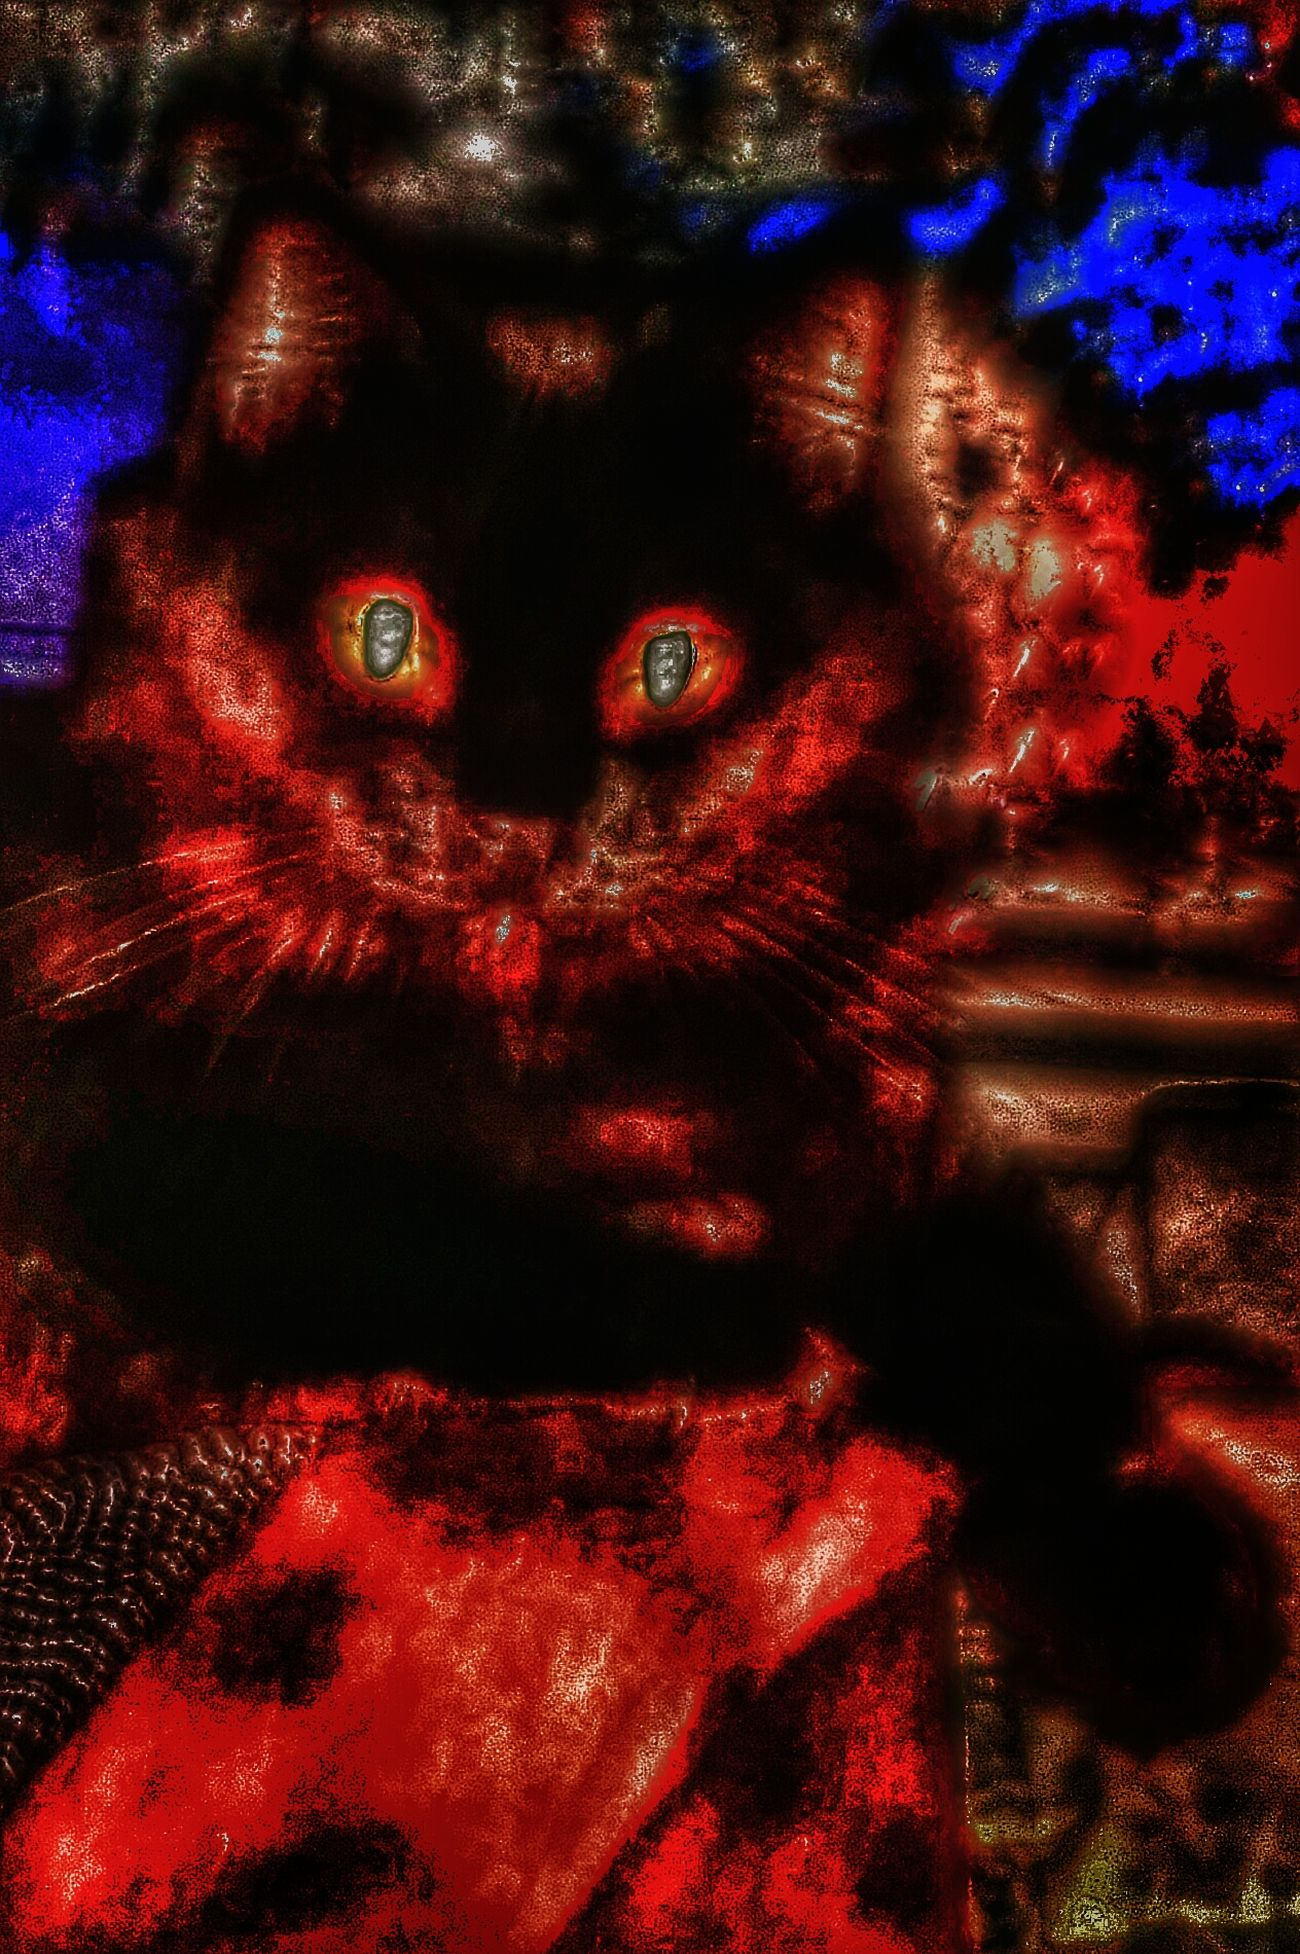 Kiki with a lot of special effects One Animal Animal Themes Domestic Animals Domestic Cat Black Color For The Love Of Photography Black Cat Photography Cat Black My Love Black Cat Head Shot Special Effects